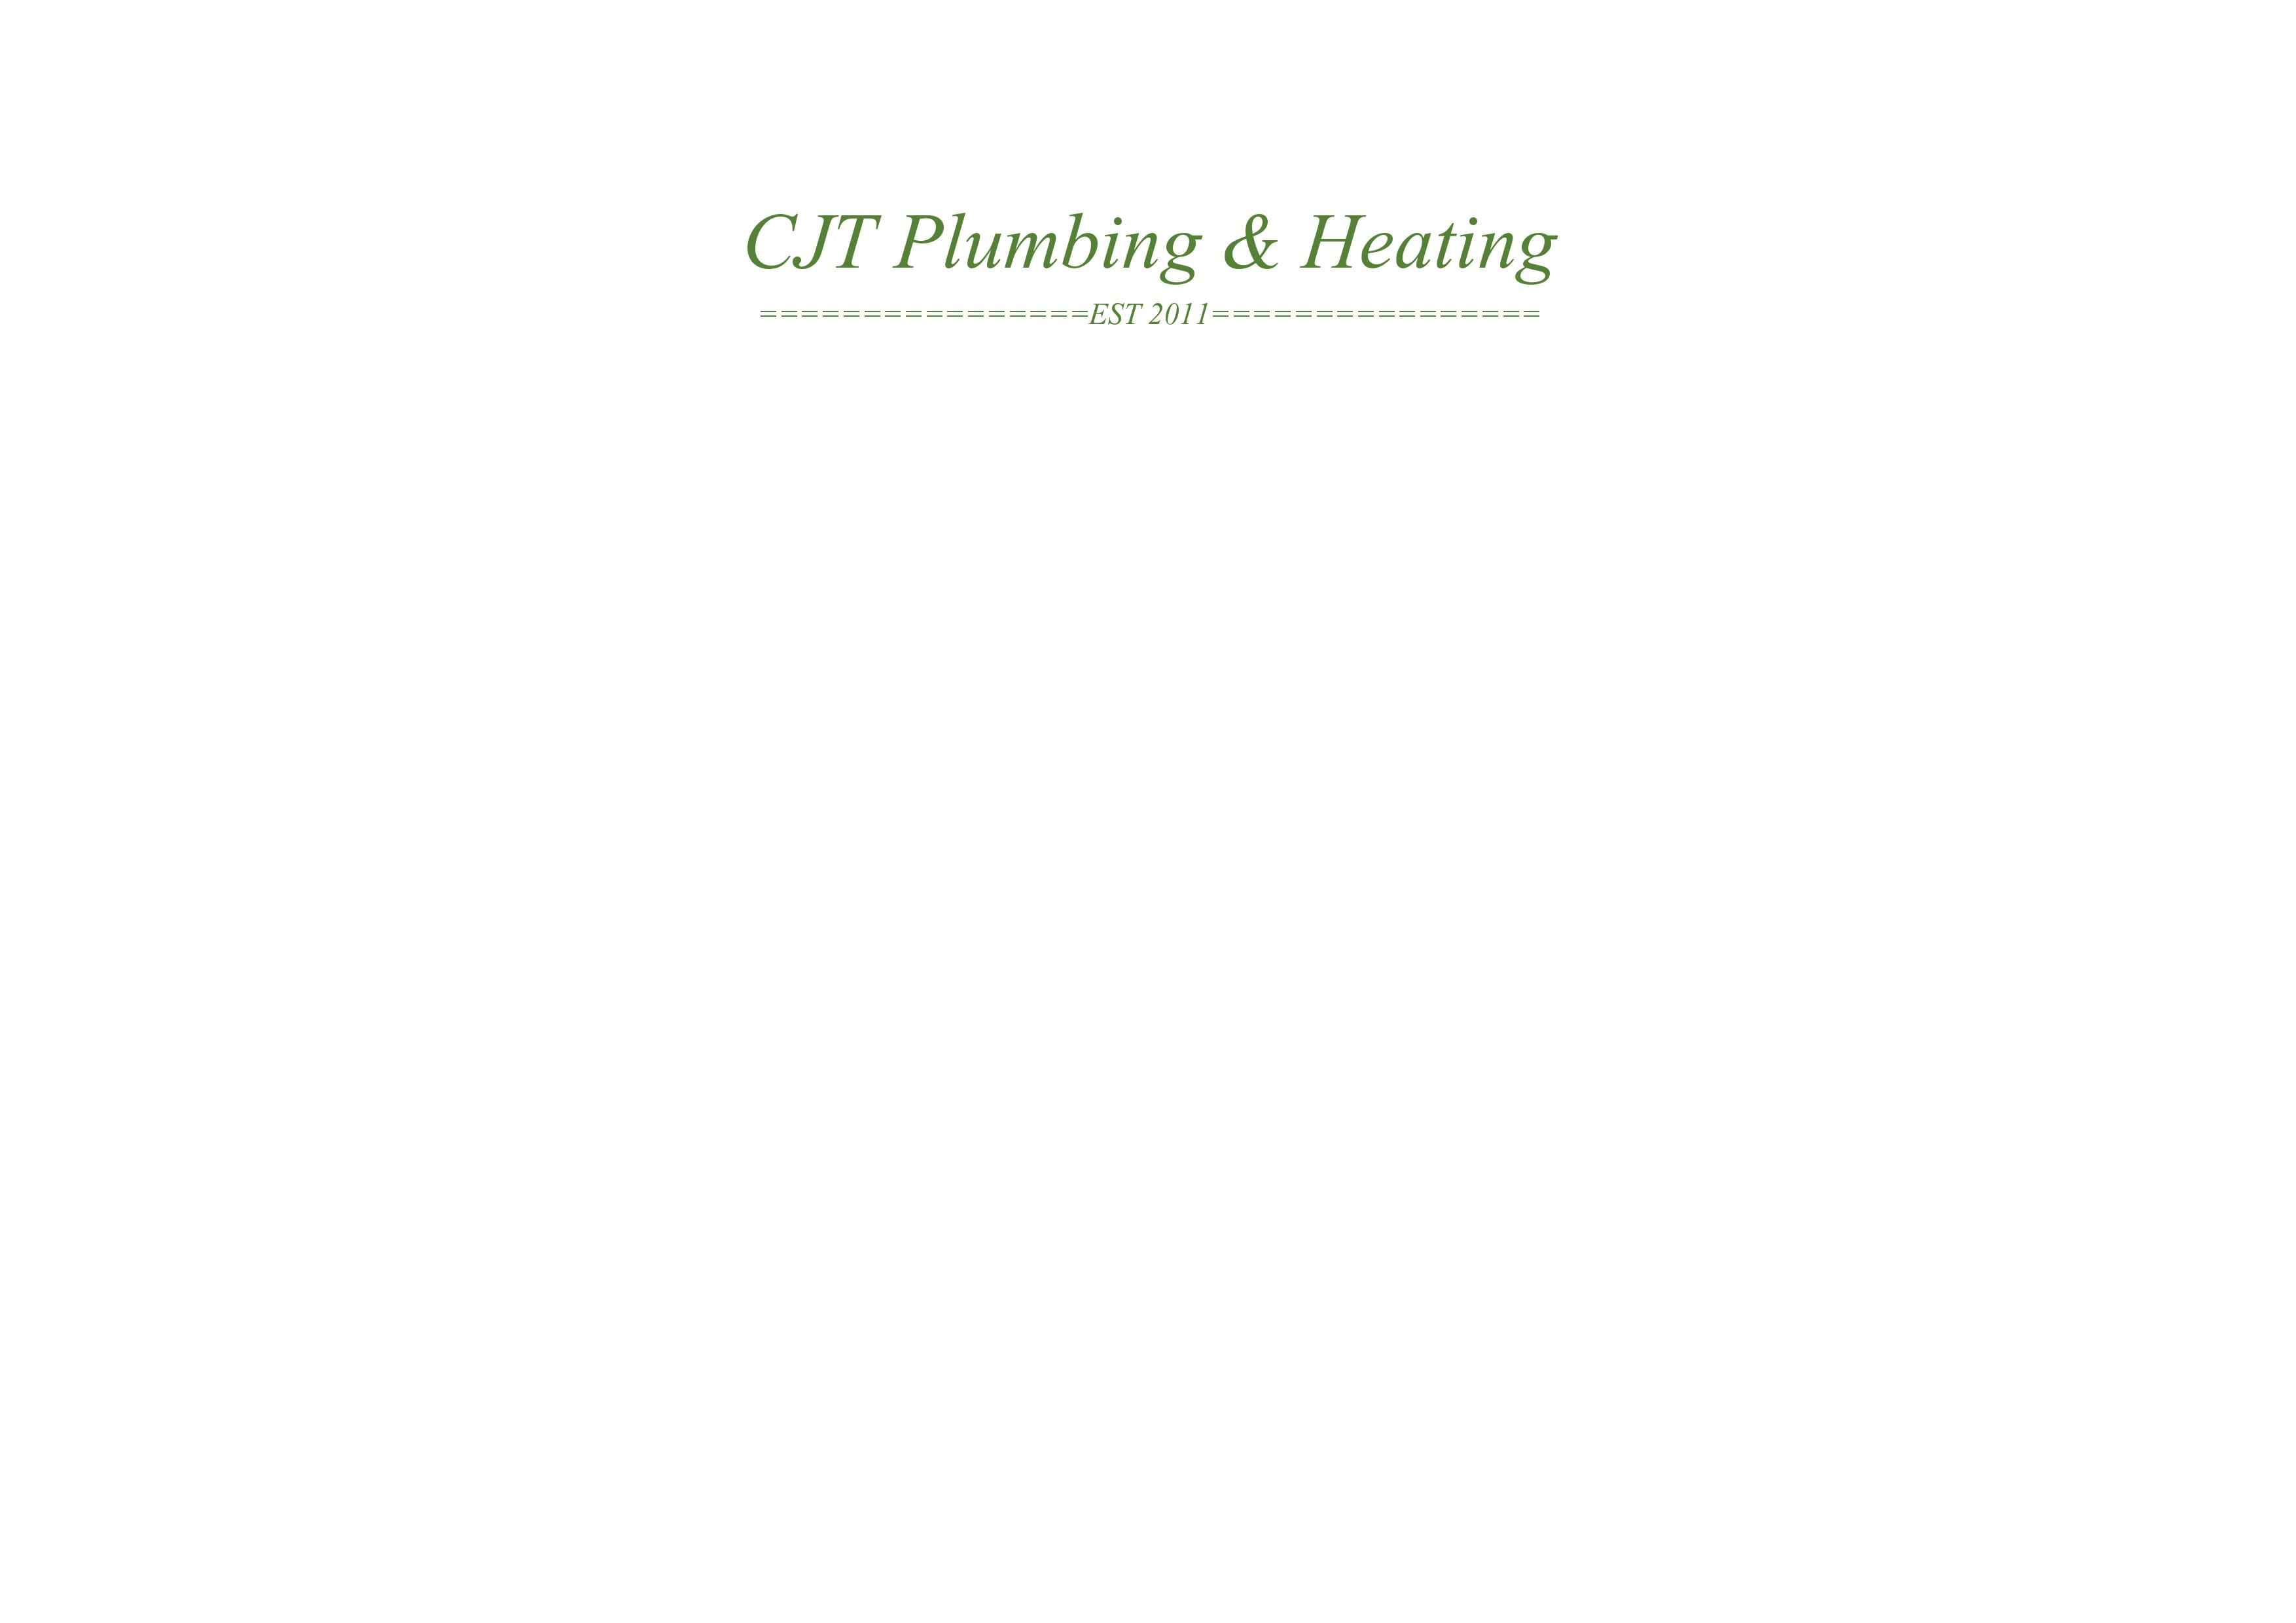 CJT Plumbing & Heating Verified Logo